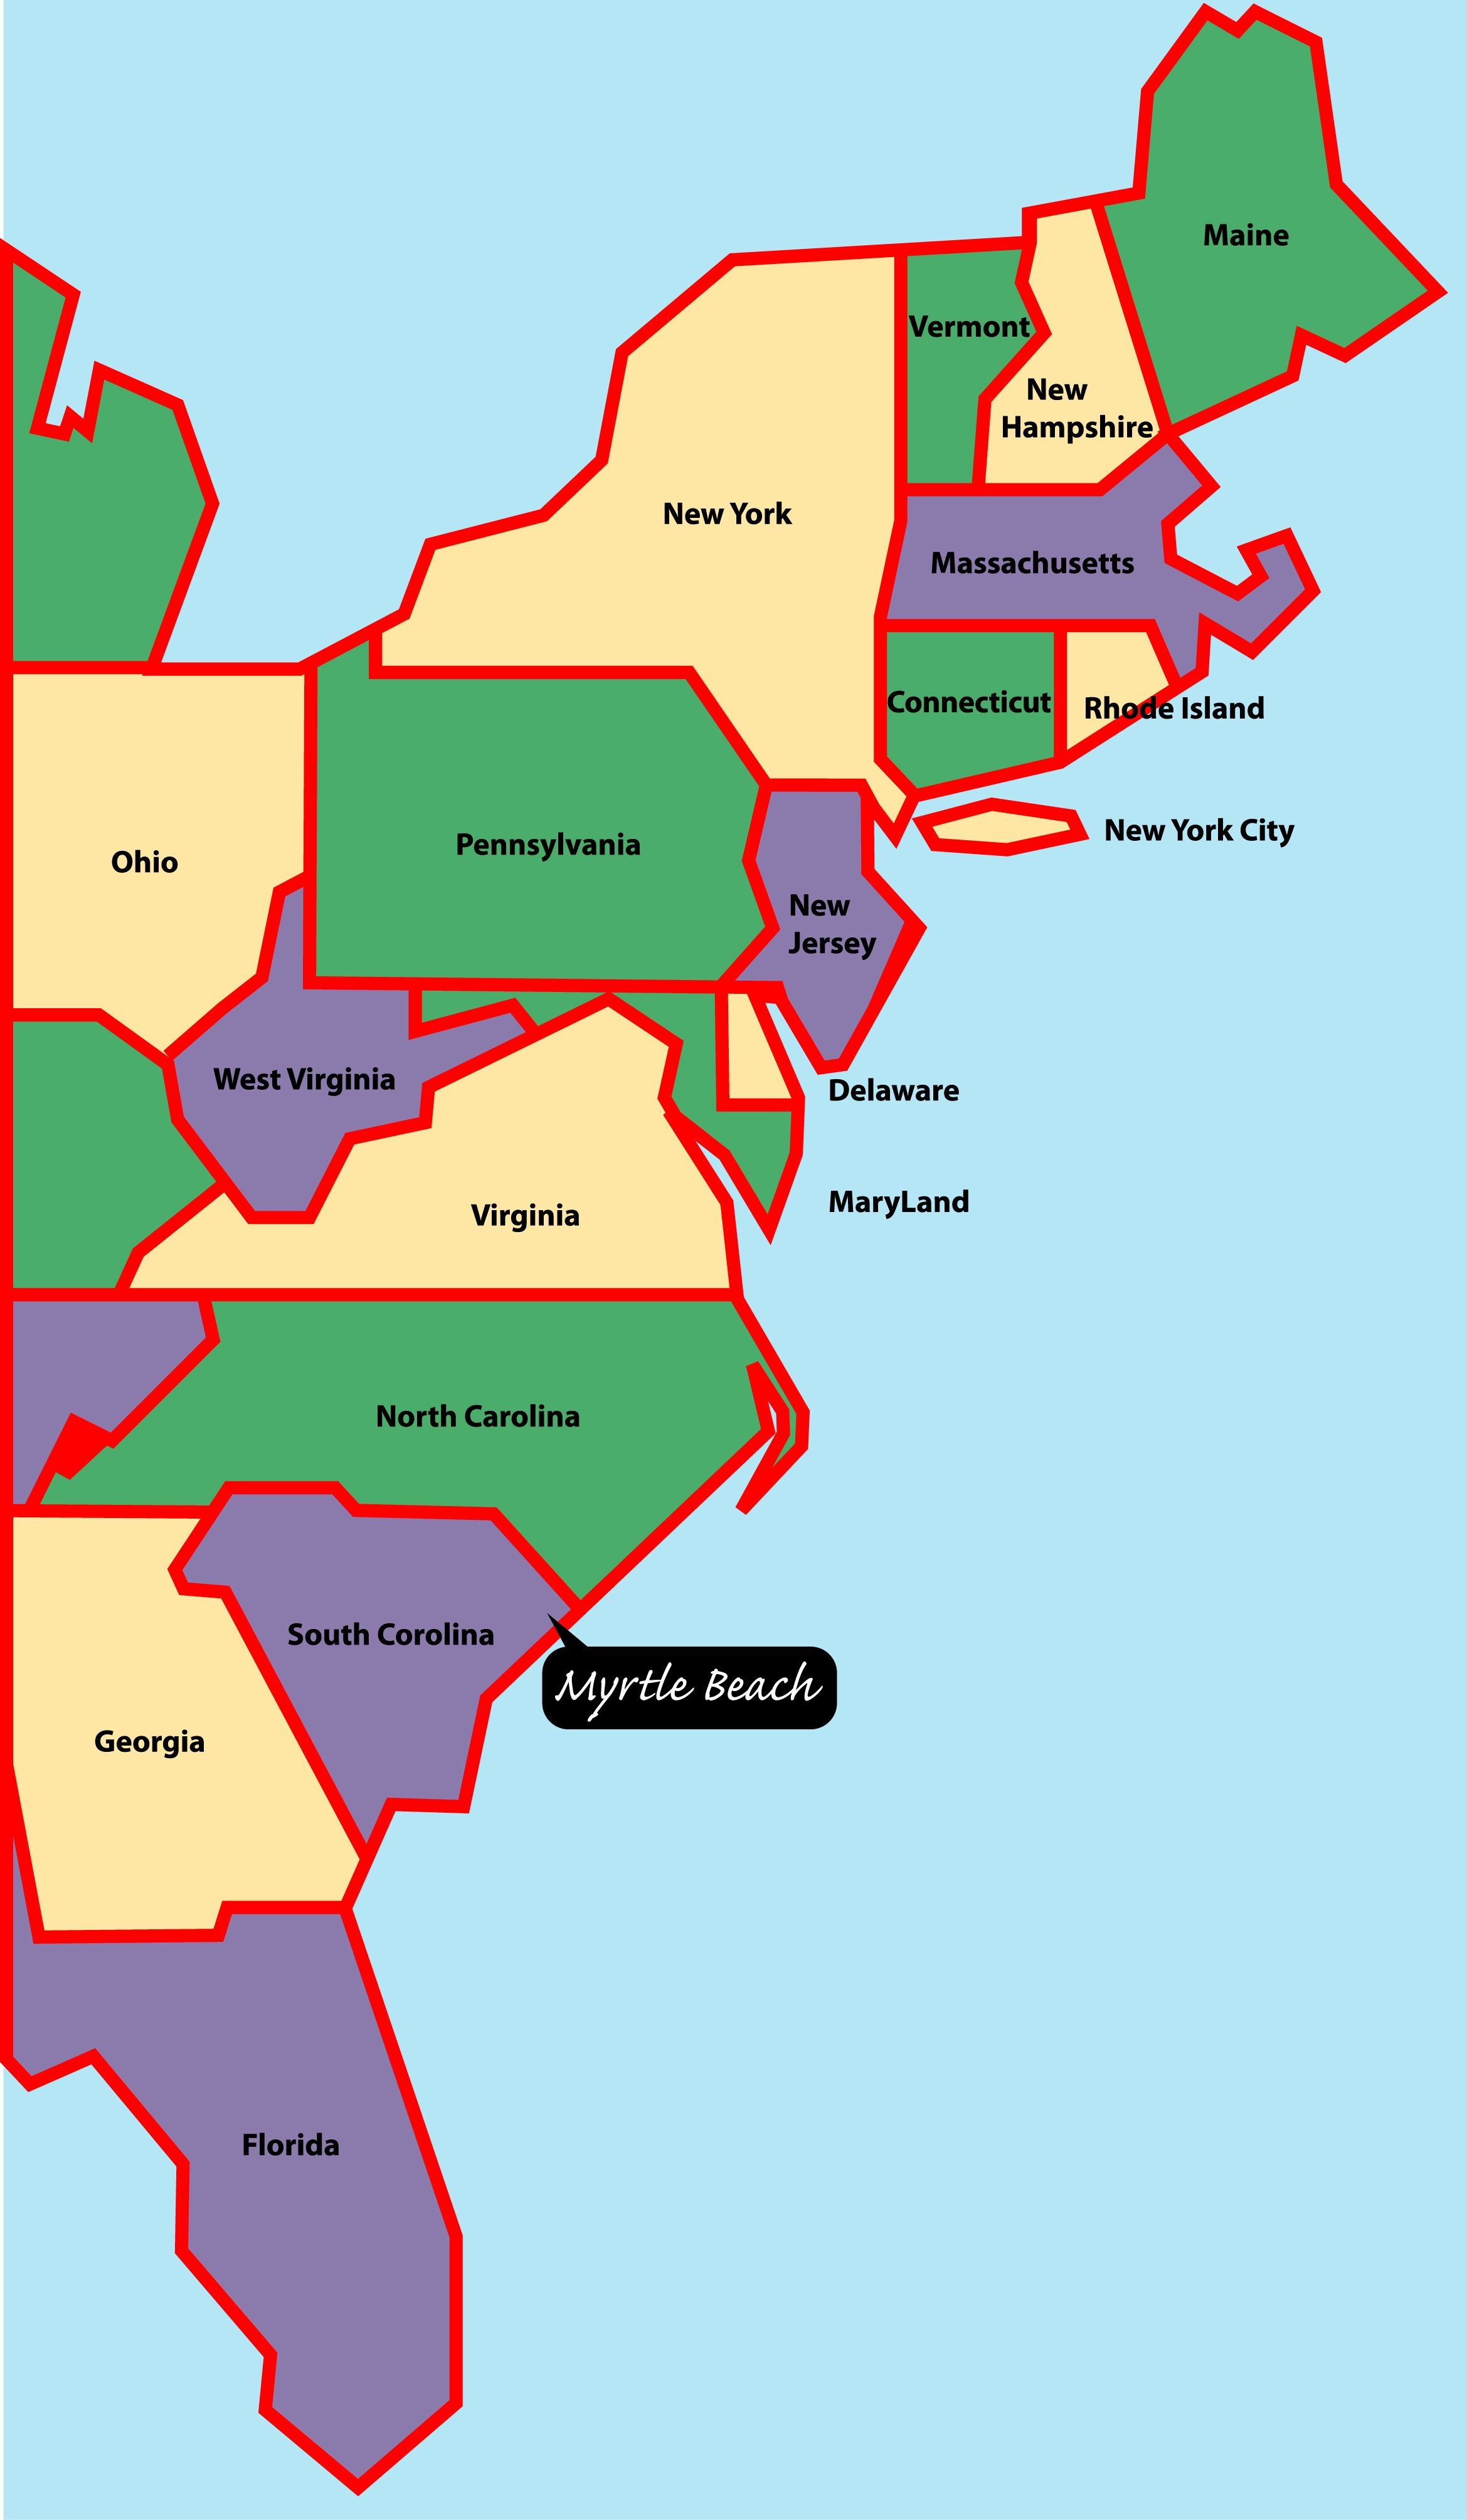 East Coast States Map east+coast+map | Myrtle Beach is situated on the east, or Atlantic